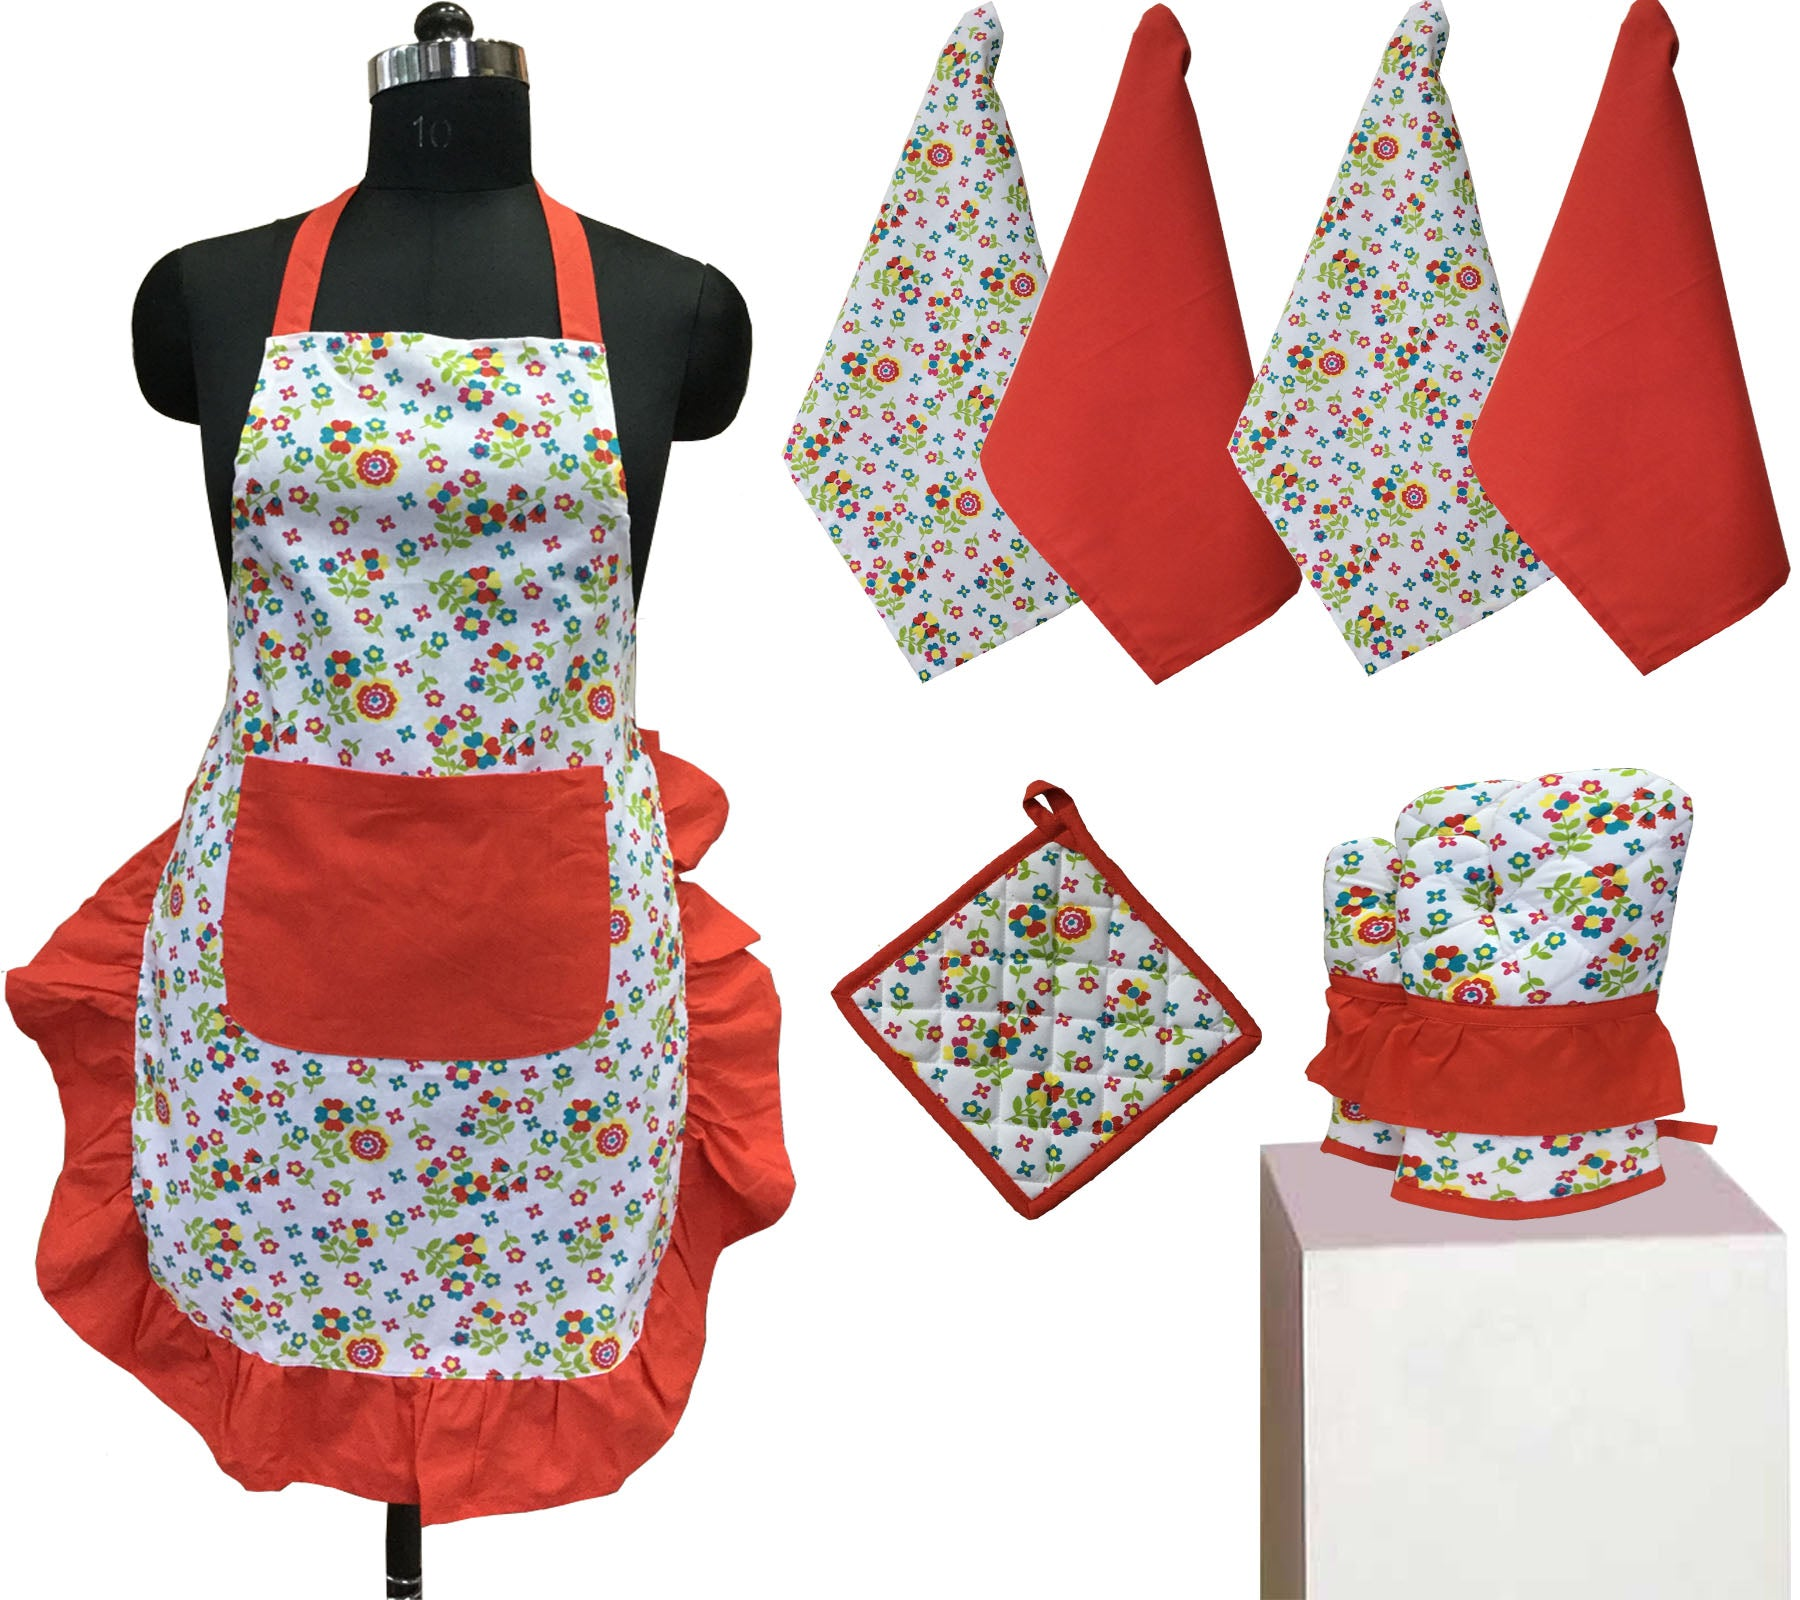 Lushomes Colorful Printed Frilly Apron Set ( 1 Apron, 4 Kitchen towels, 2 Oven Mittens, 1 Pot Holder)